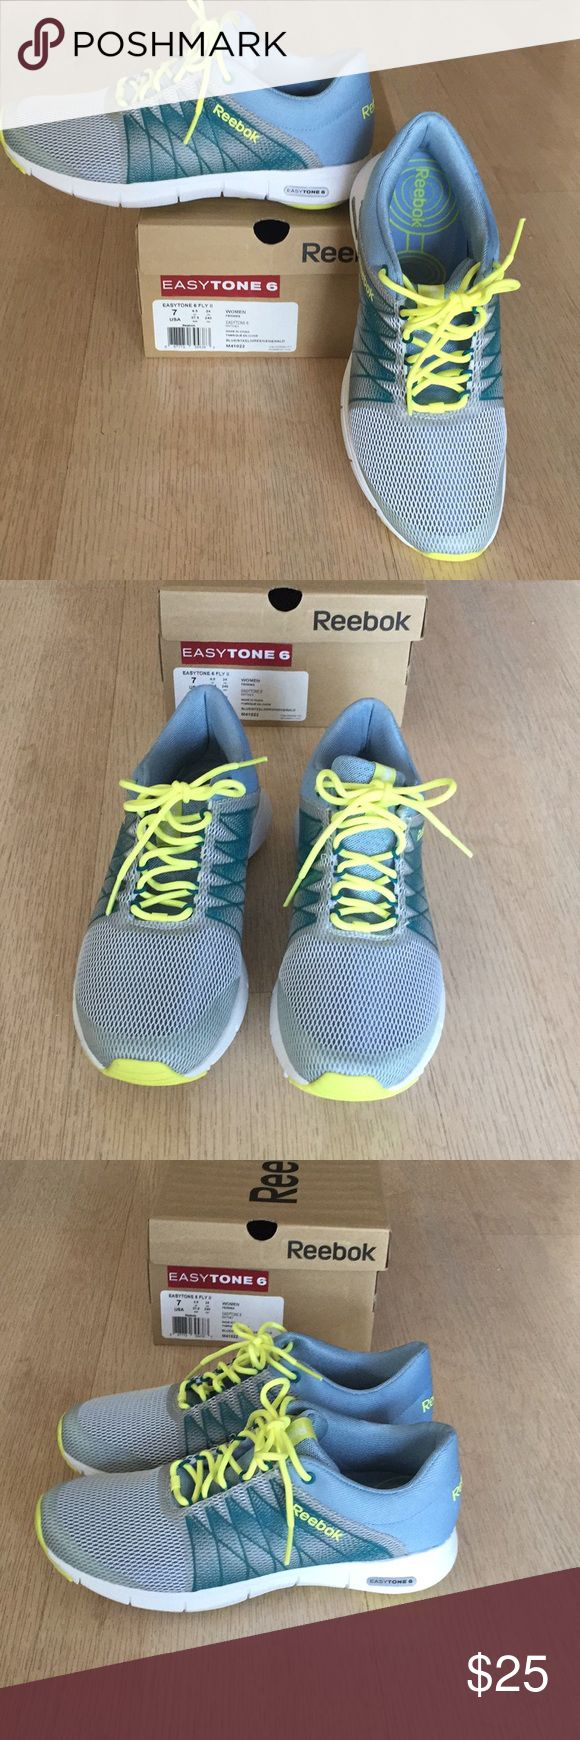 Reebok easytone 6 sneakers Reebok easytone 6 sneakers. Cute and comfortable. Brand new. Reebok Shoes Athletic Shoes